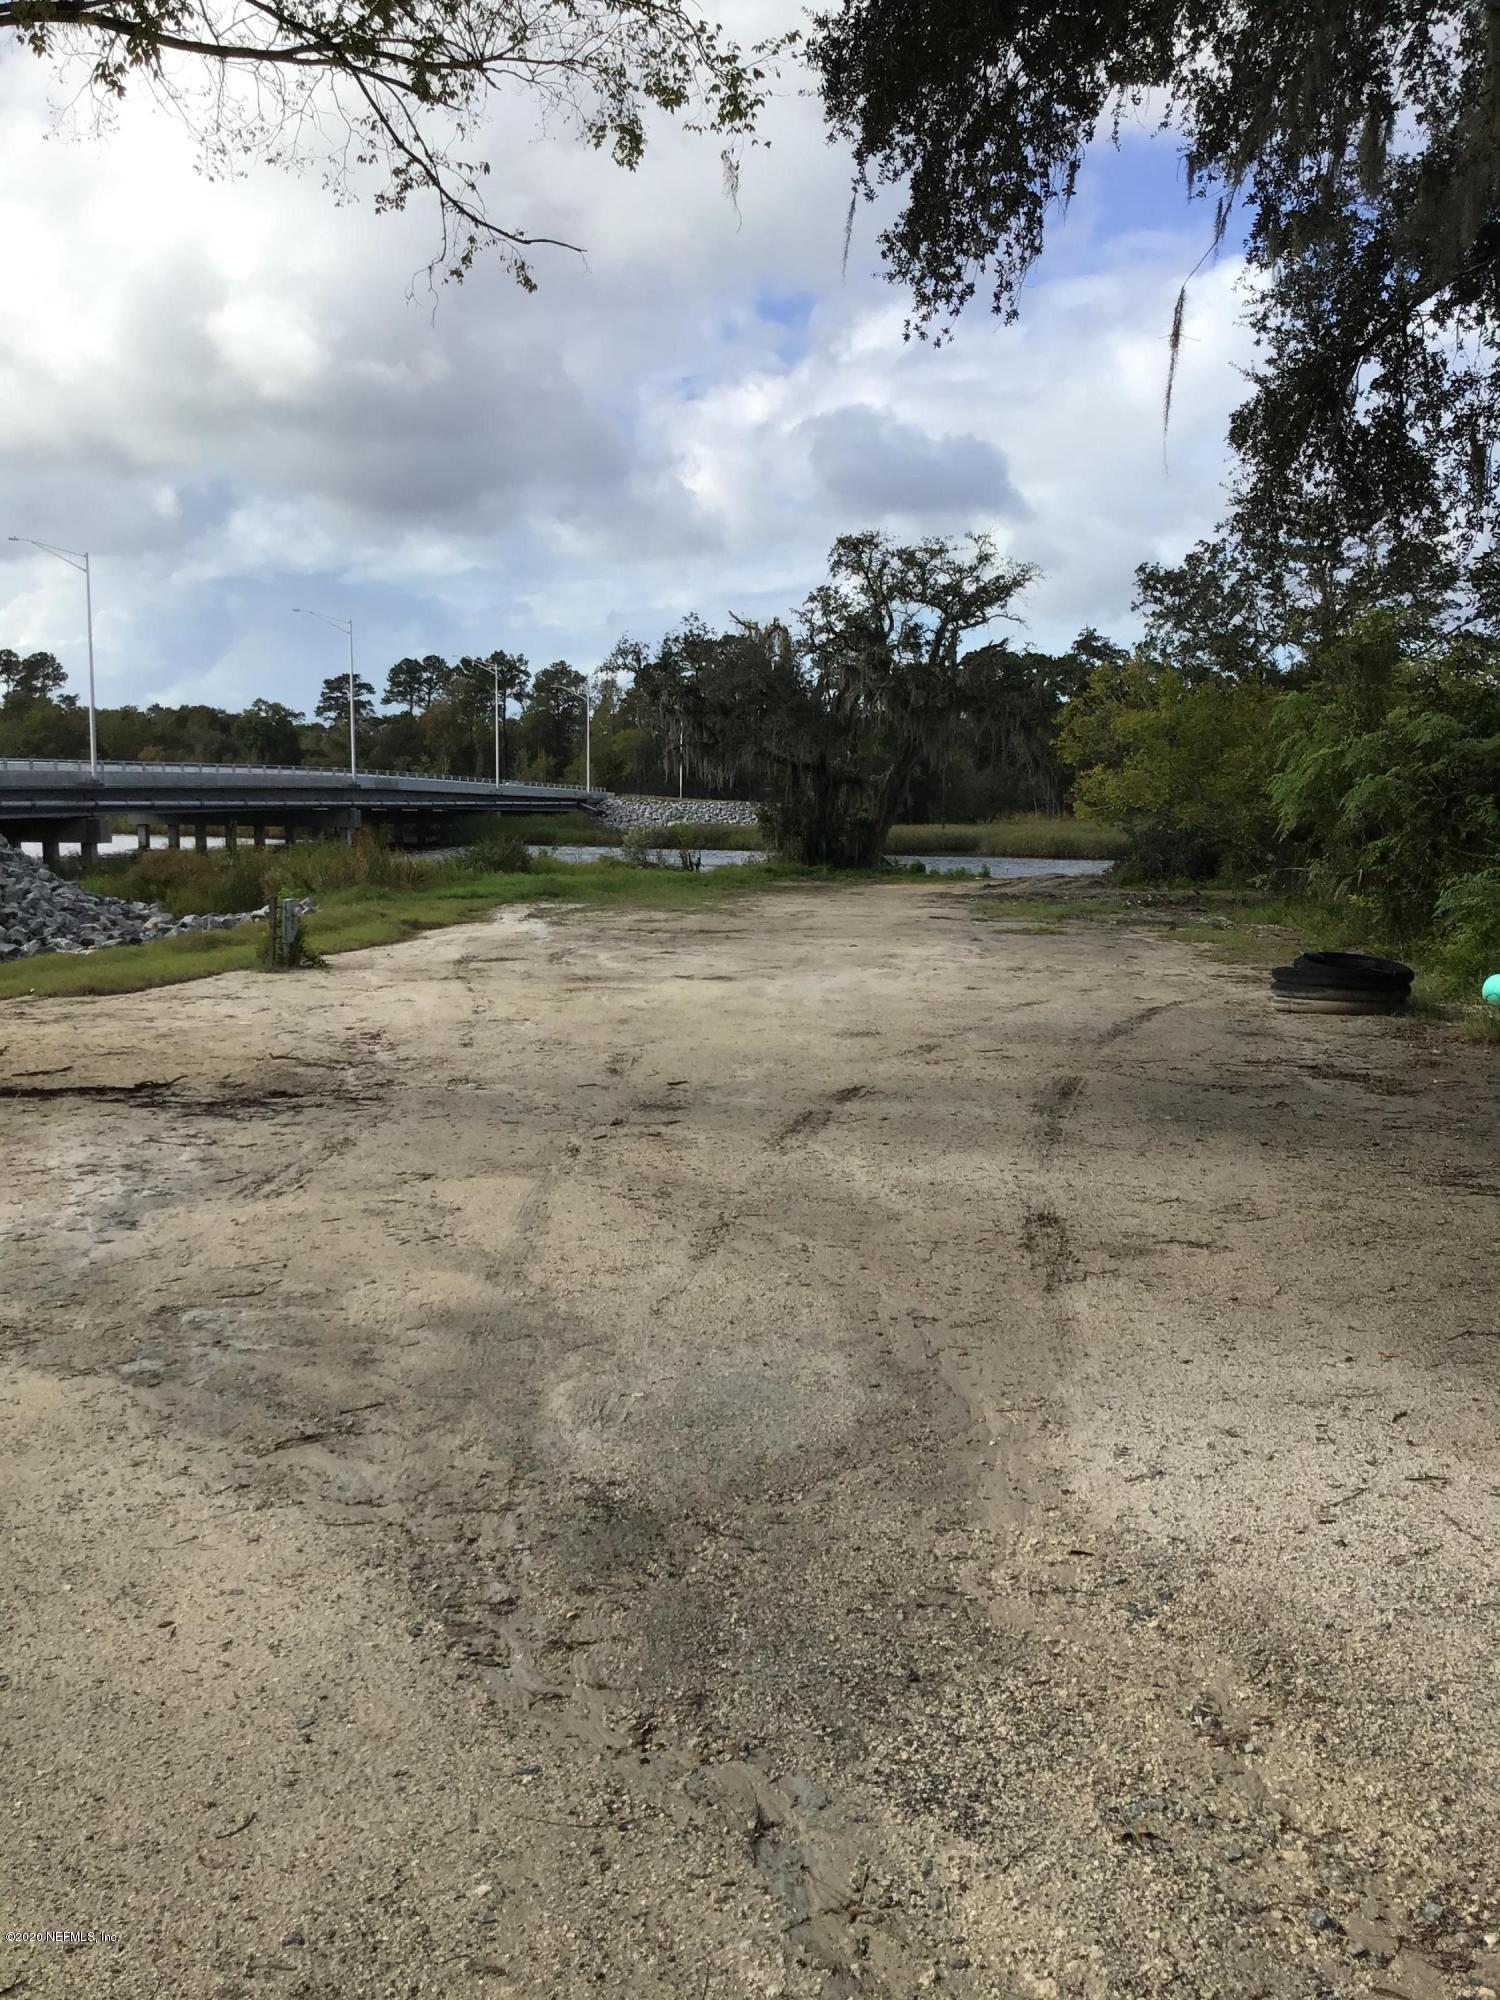 0 RIBAULT SCENIC, JACKSONVILLE, FLORIDA 32208, ,Vacant land,For sale,RIBAULT SCENIC,1081572